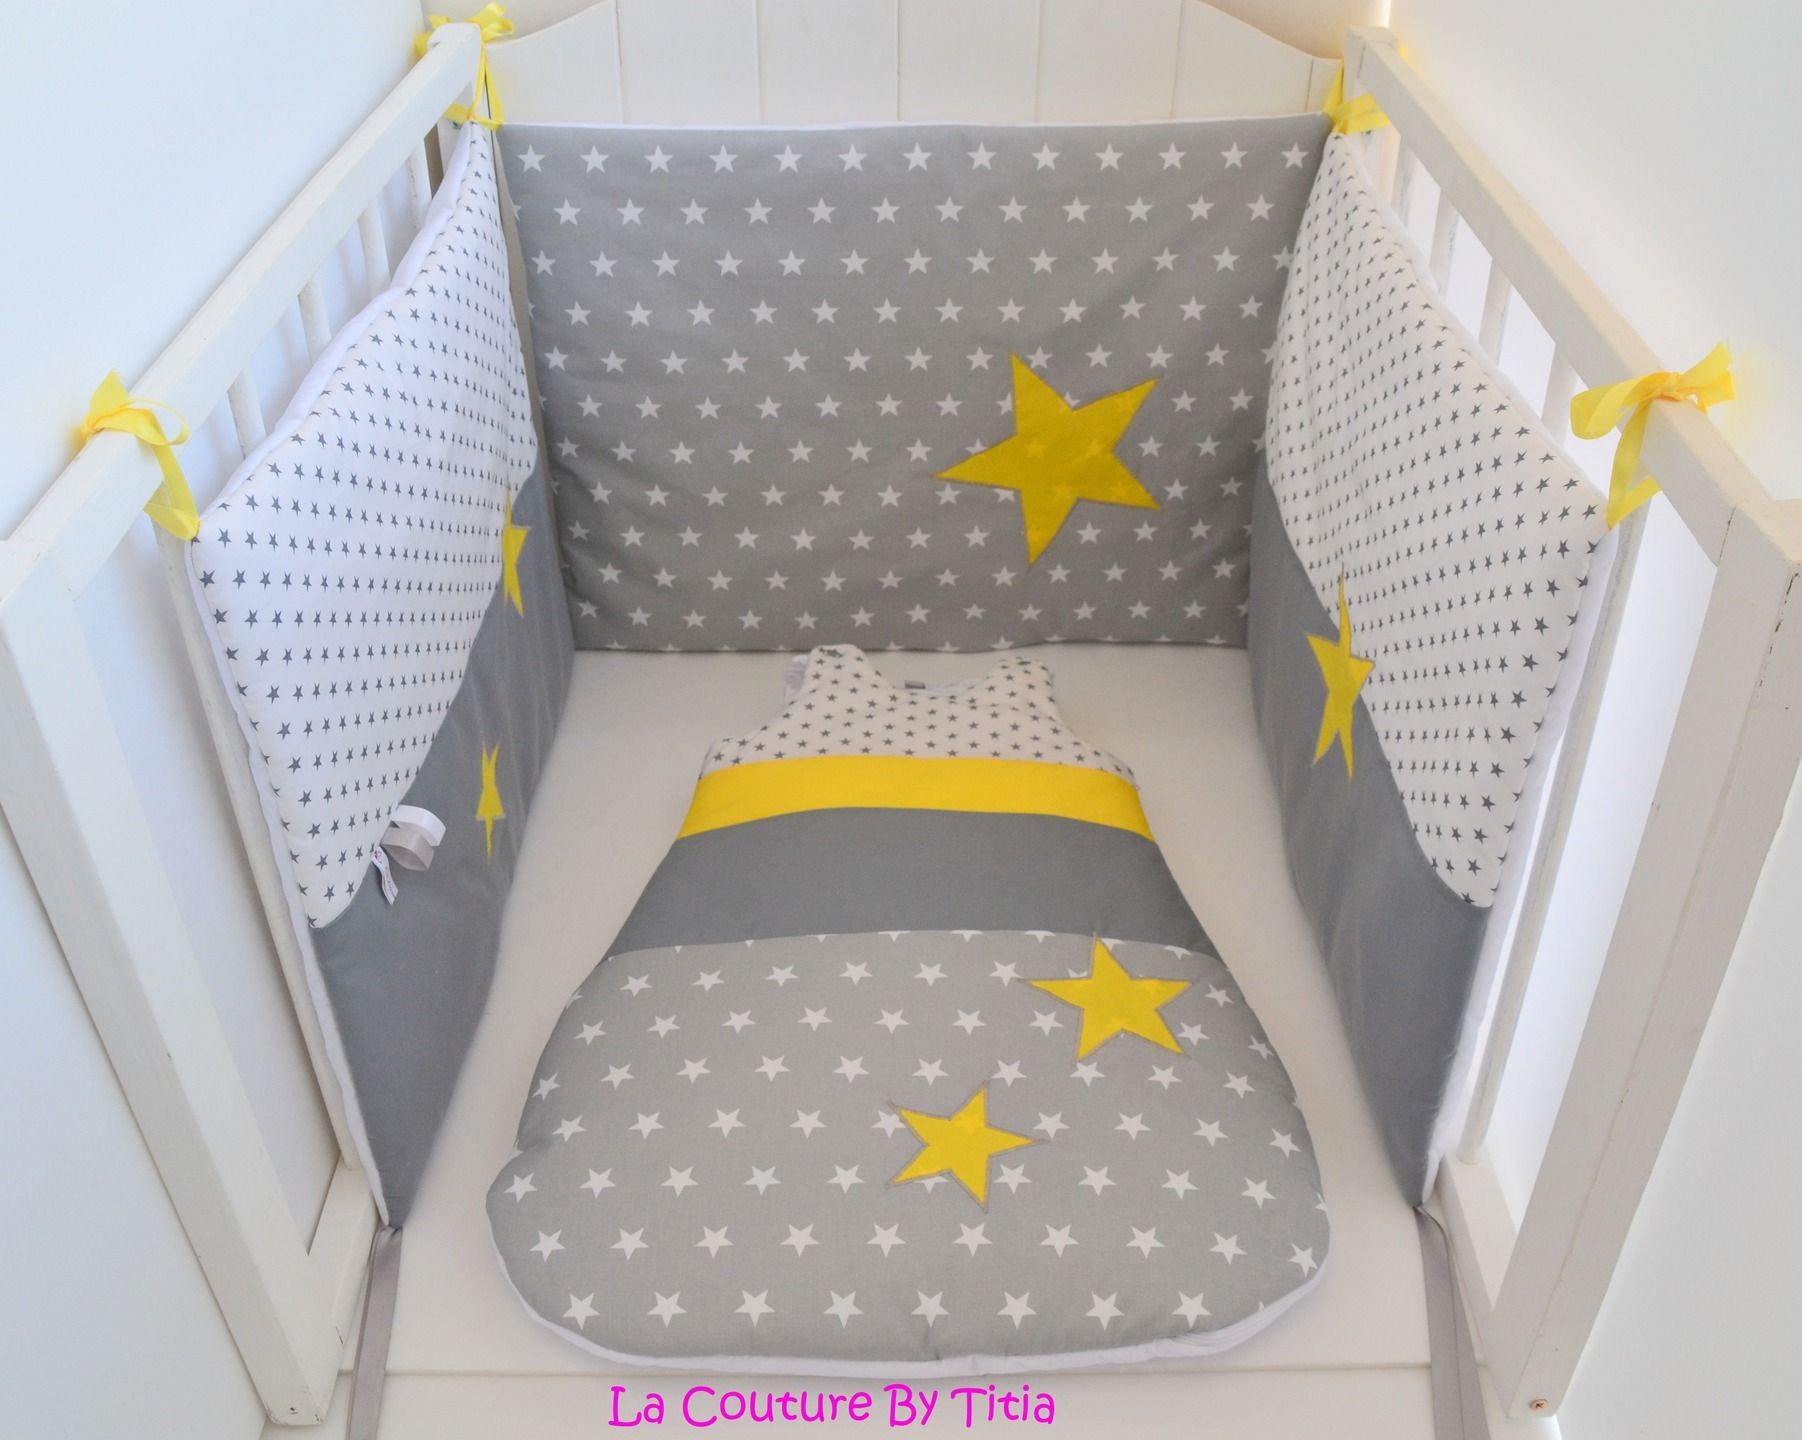 tour de lit et gigoteuse fait main etoiles gris et jaune lacouturebytitia baby rooms. Black Bedroom Furniture Sets. Home Design Ideas